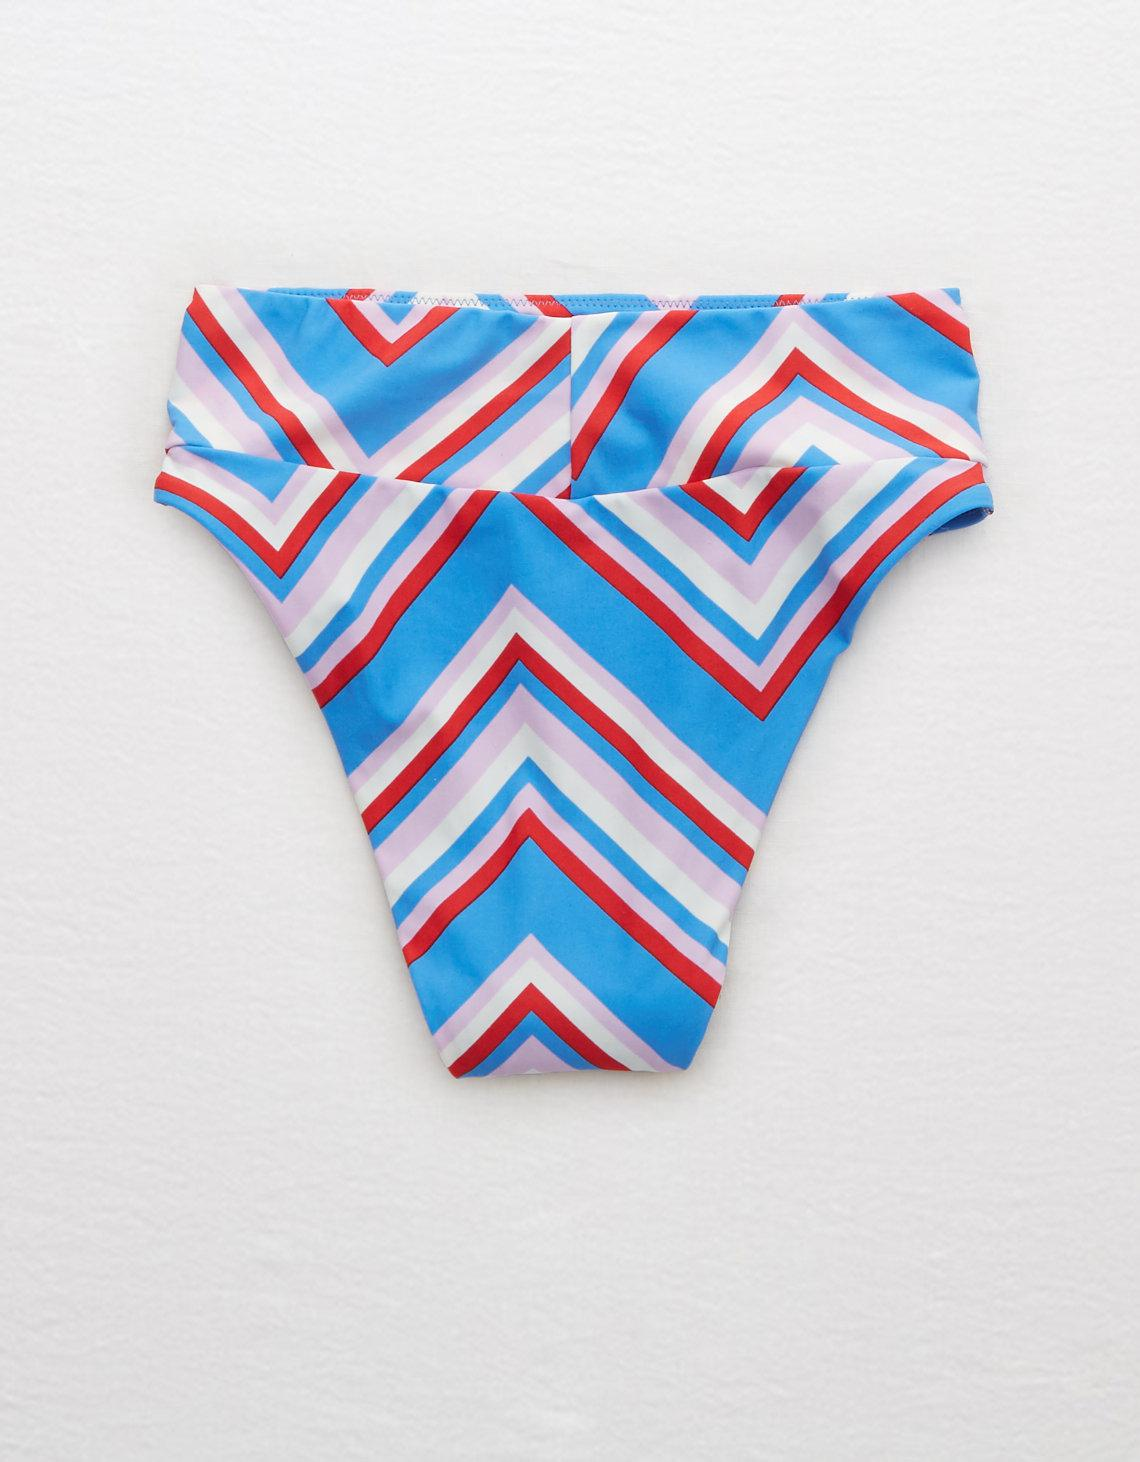 c489c99d0d Lyst - American Eagle High Cut Cheeky Bikini Bottom in Blue